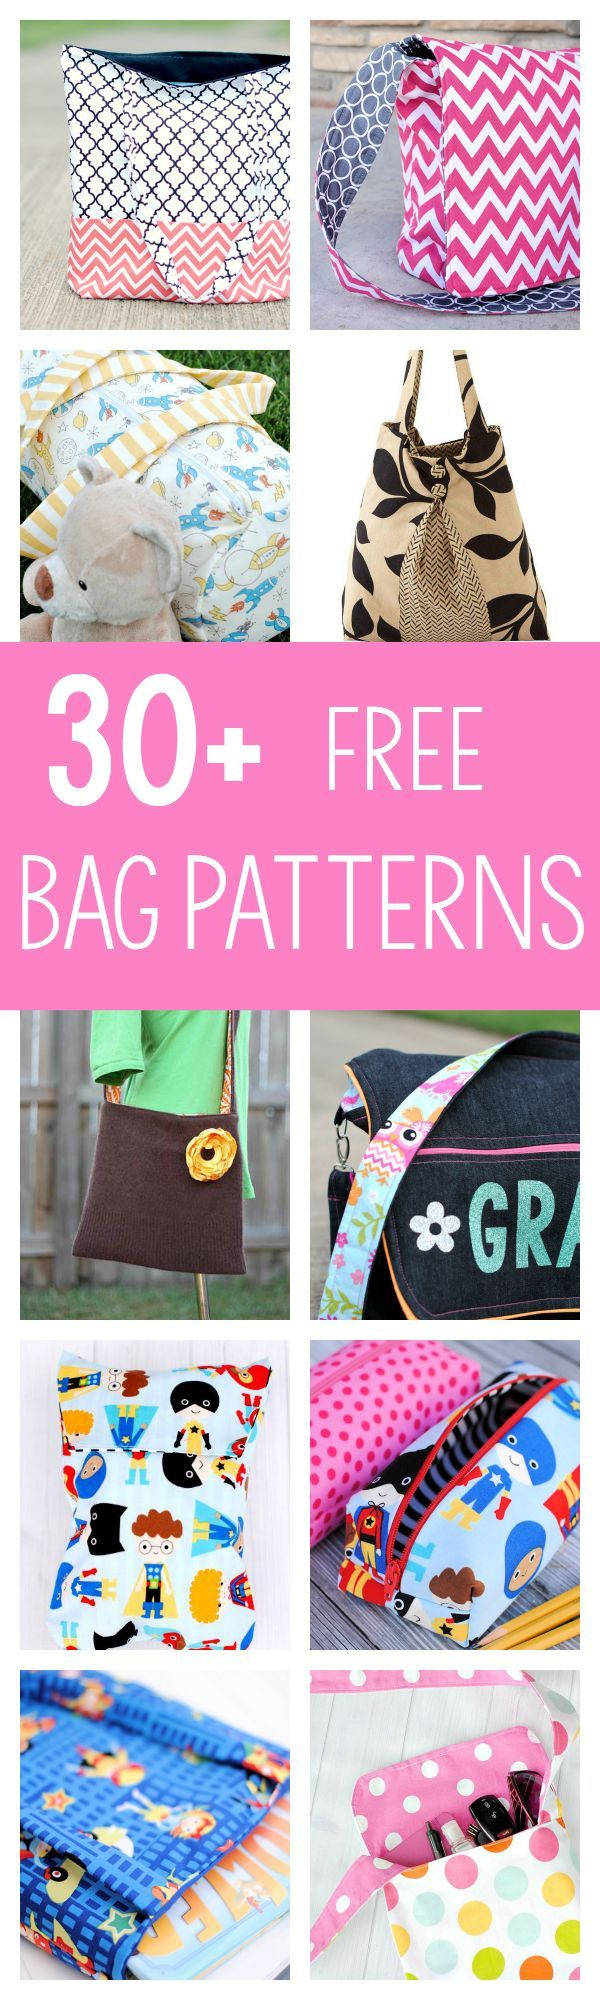 Tons of Great Free Bag Patterns to Sew. For more Free DIY Bags and Purses, head to http://www.sewinlove.com.au/category/fashion/accessories-fashion/